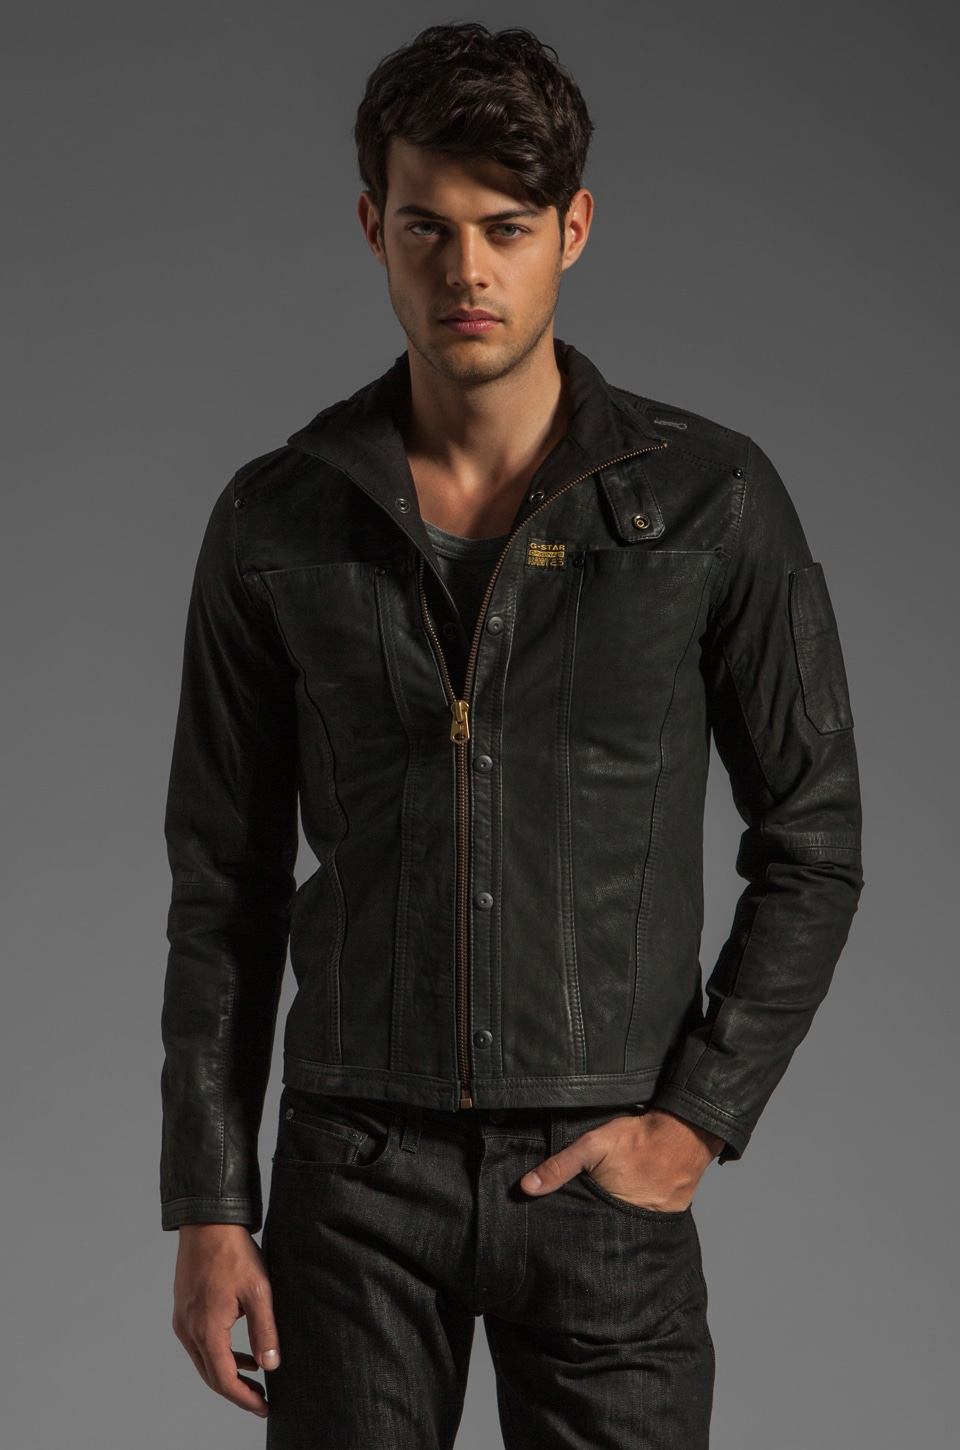 G-Star Modernist Leather Jacket in Black